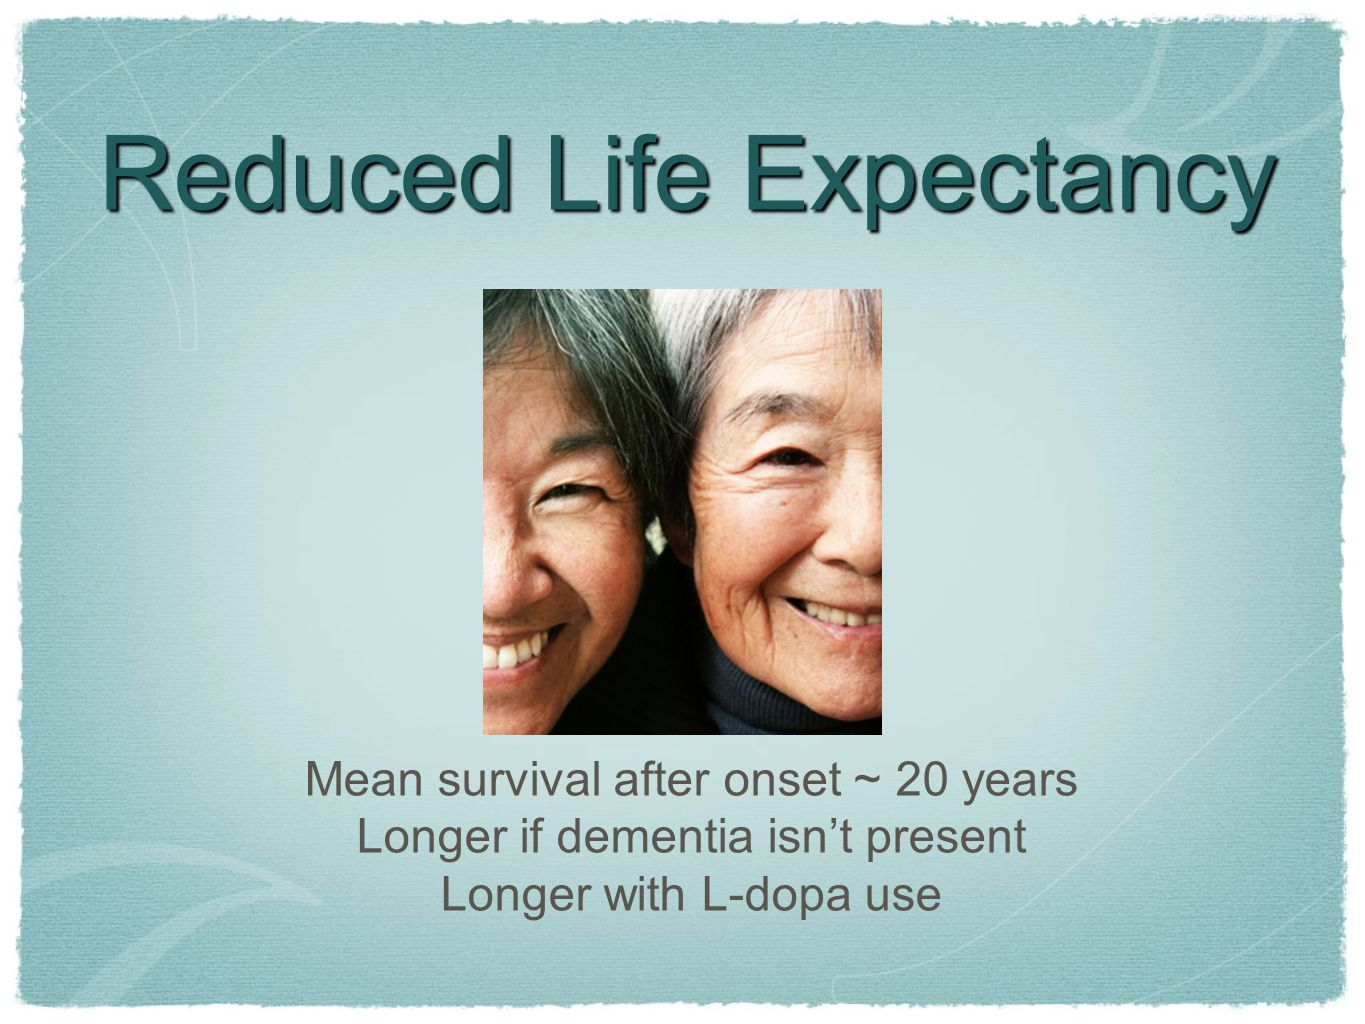 Reduced Life Expectancy